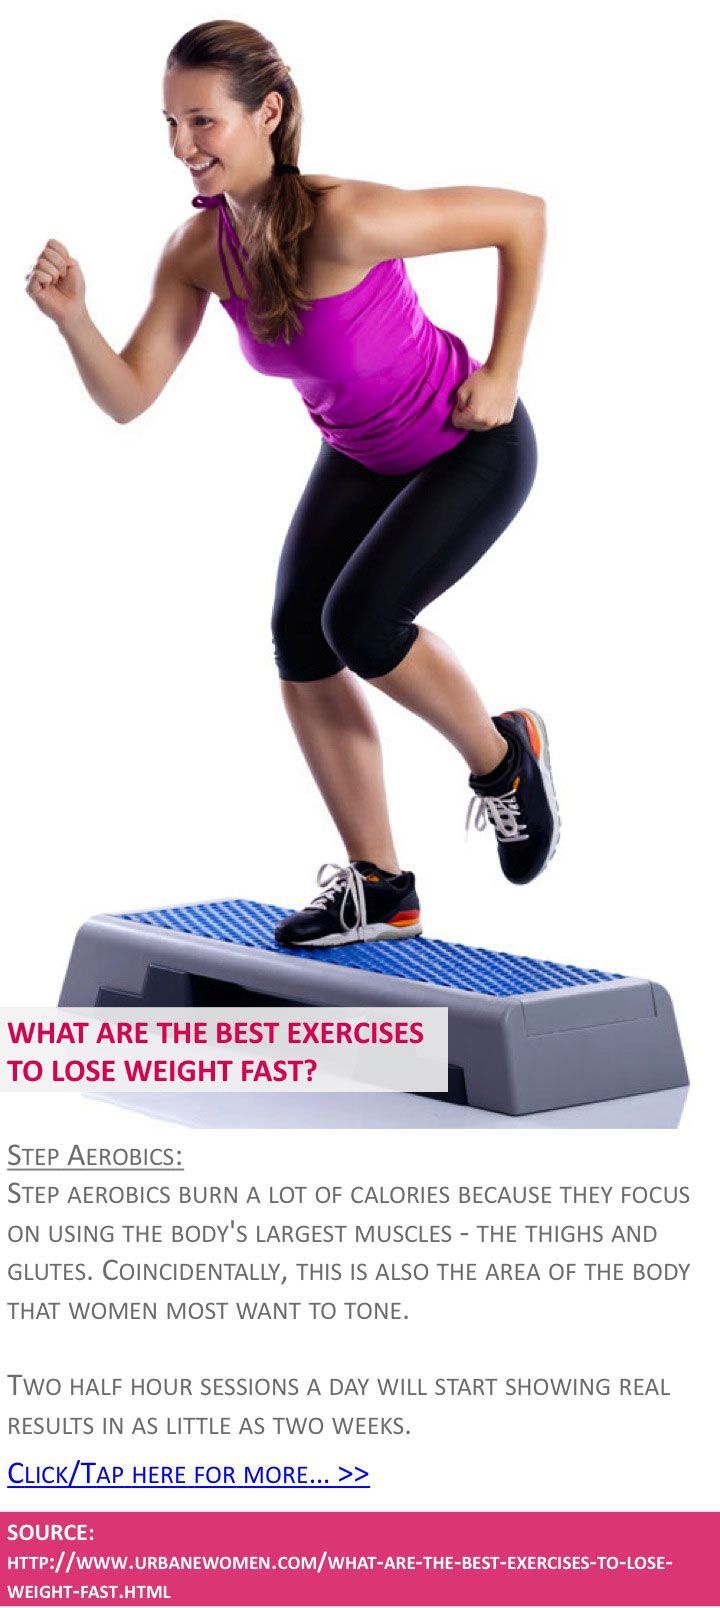 What are the best exercises to lose weight fast step aerobics click for